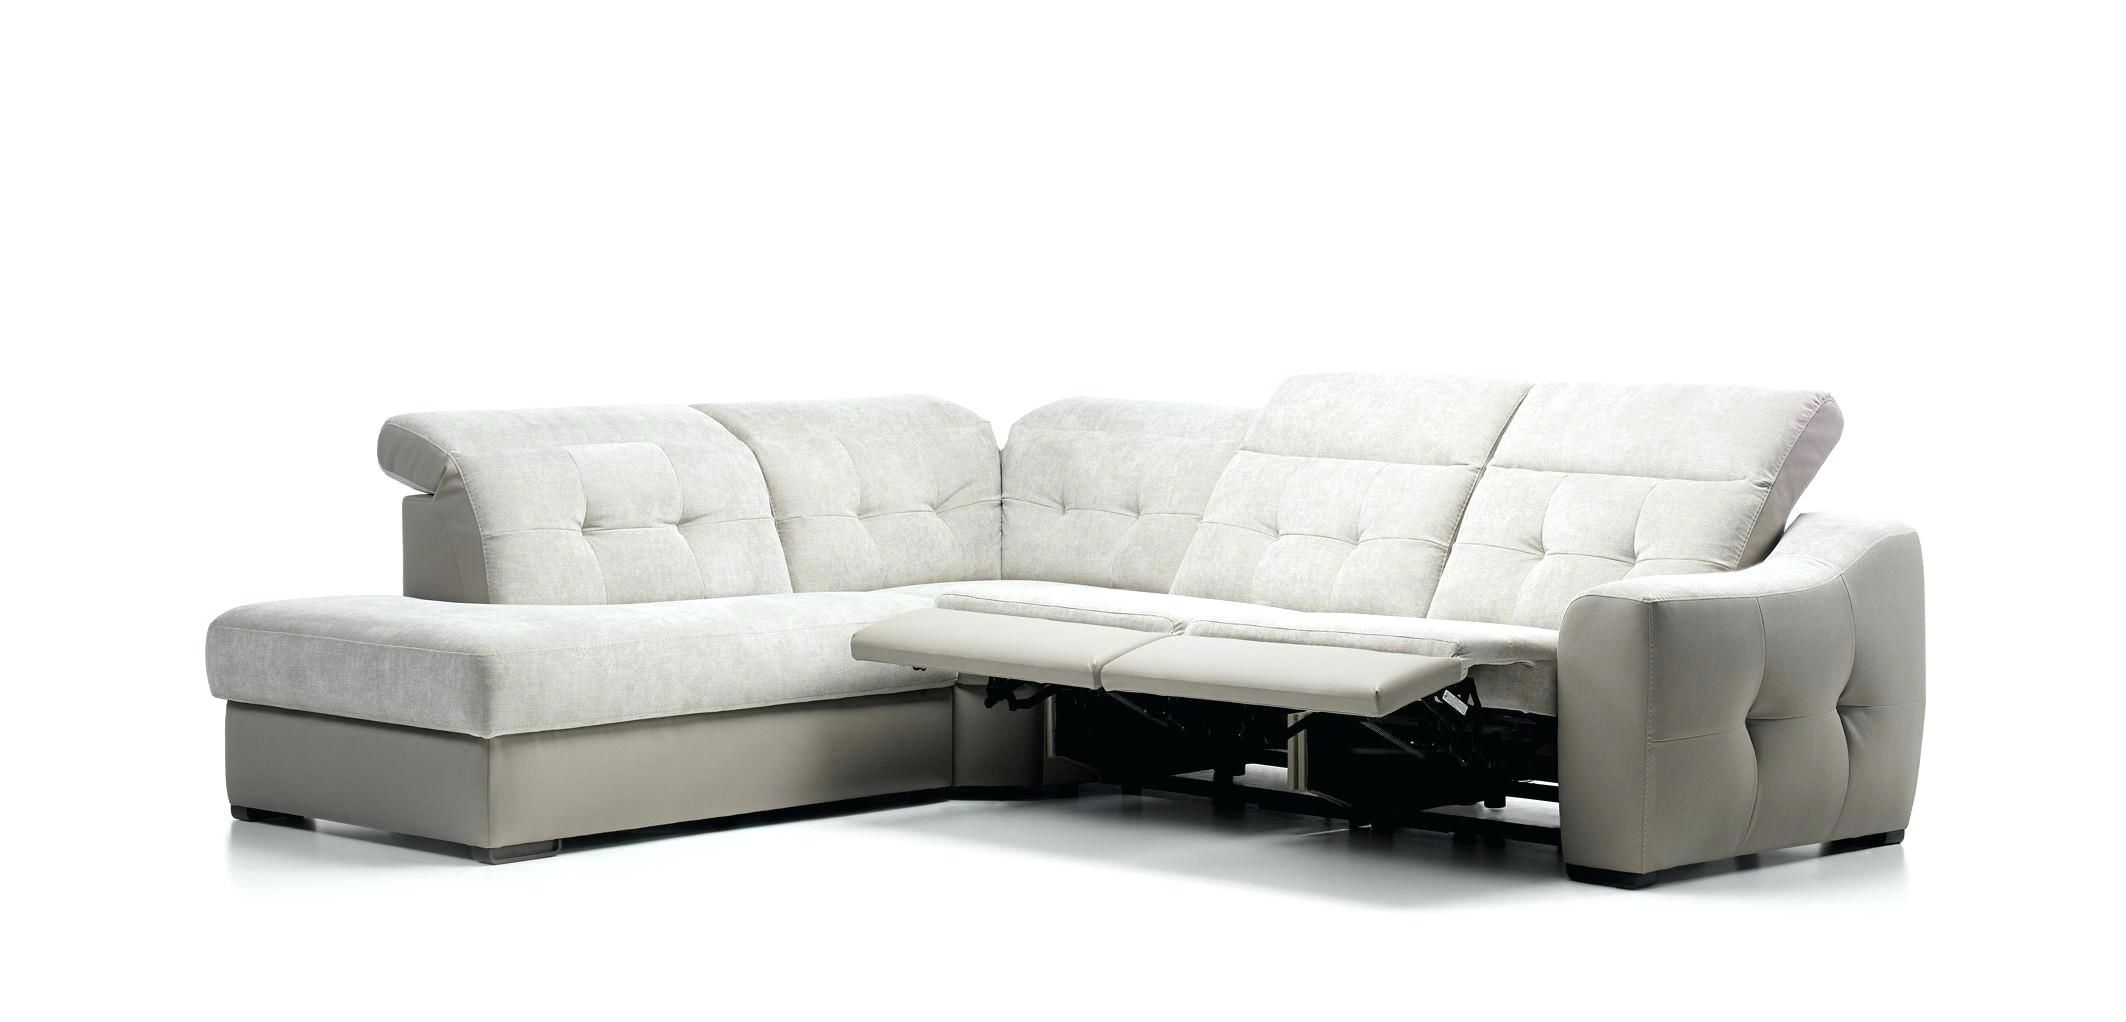 excellent briarwood microfiber sofa gallery-Elegant Briarwood Microfiber sofa Inspiration